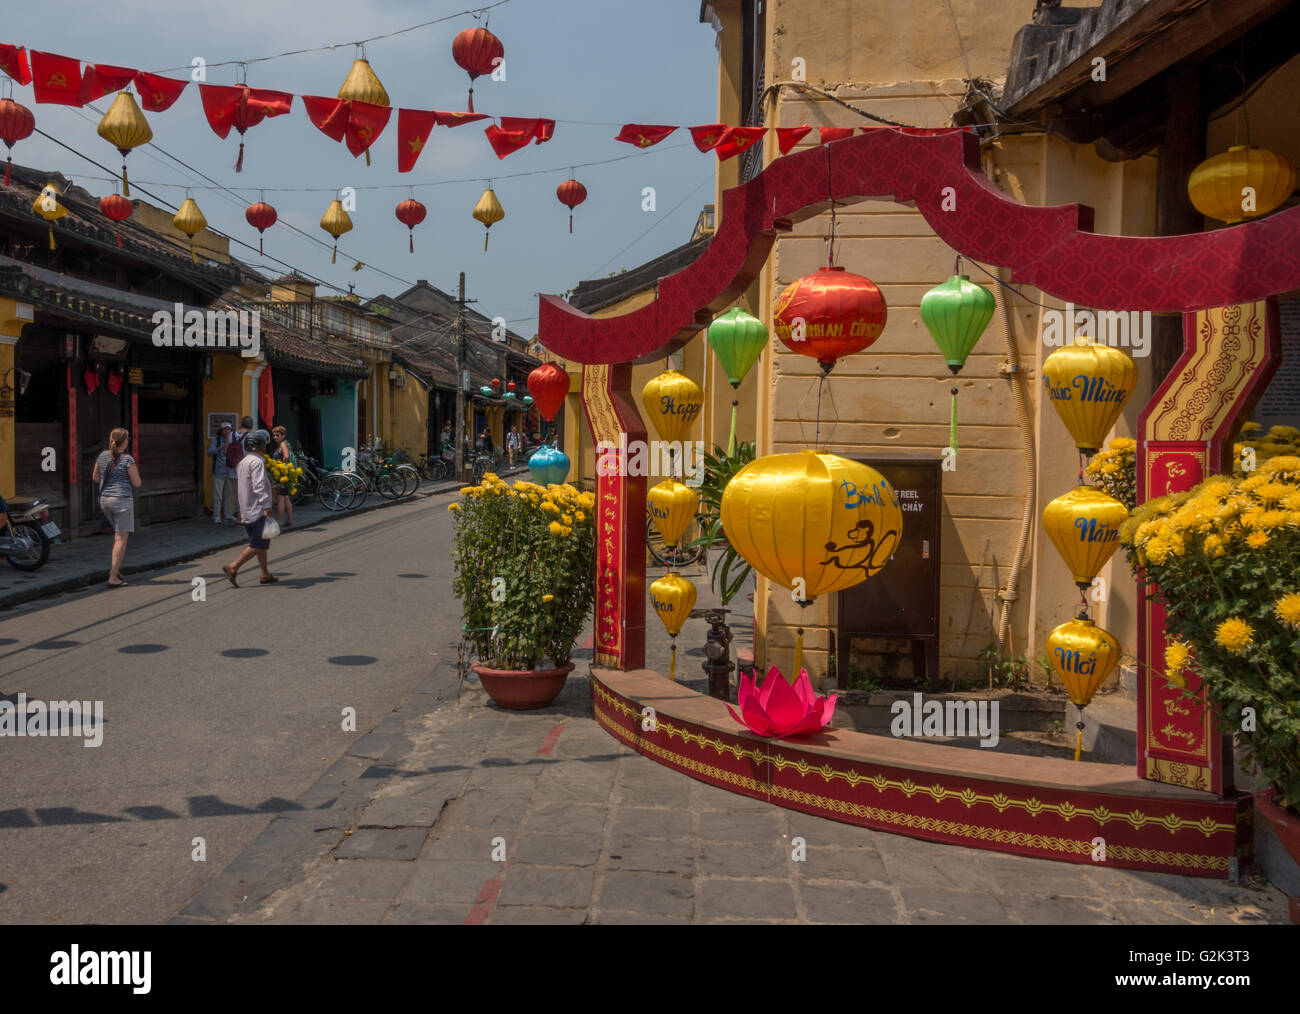 Colourfully decorated streets are famous in Hoi An, Vietnam - Stock Image